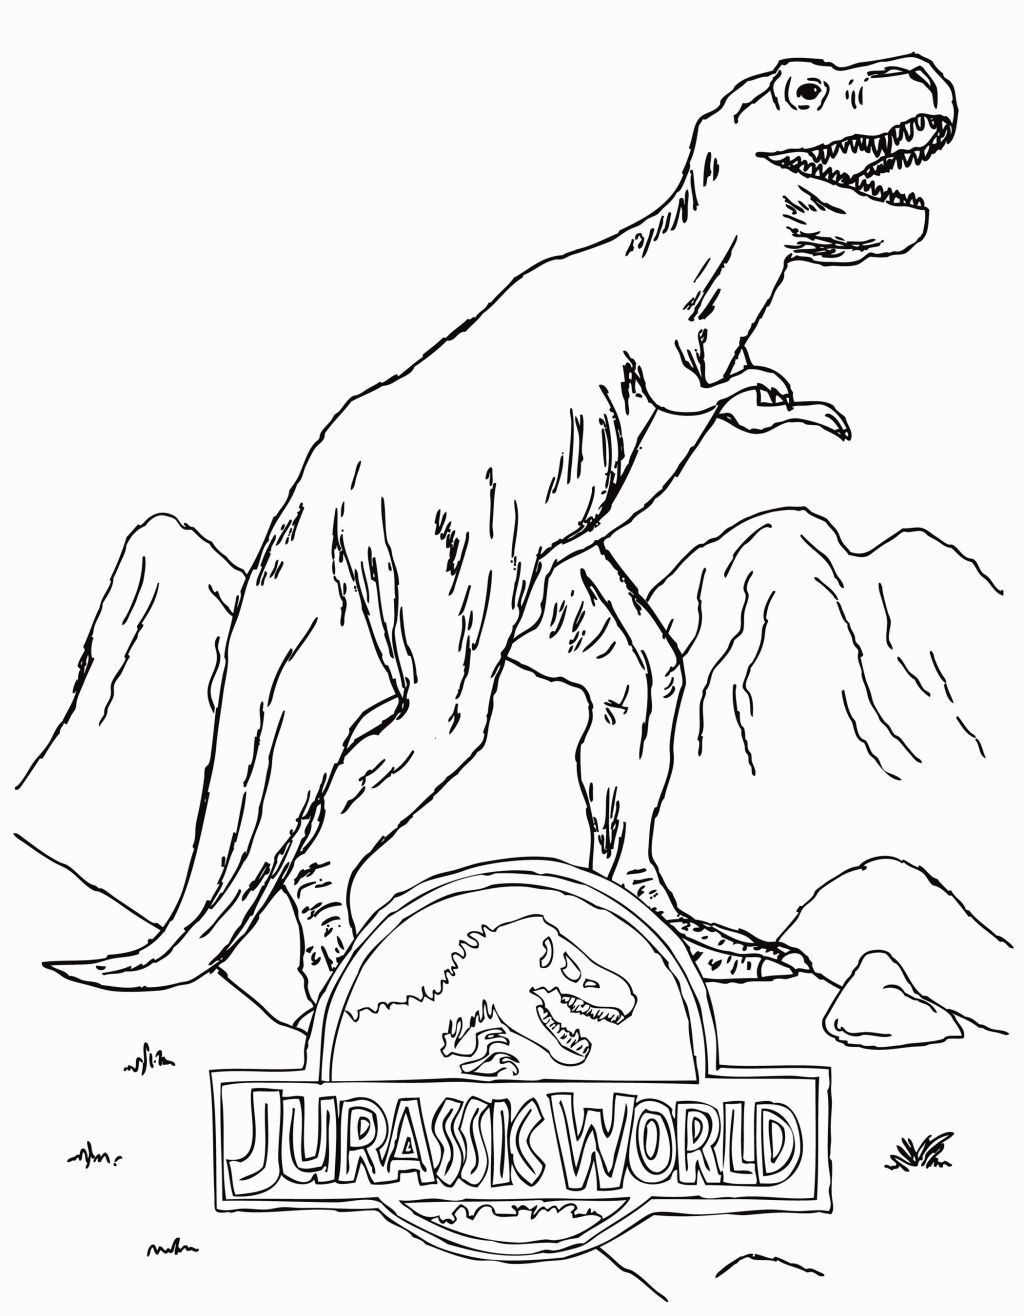 Jurassic World Coloring Sheets Dibujos Para Colorear Jurassic World Dibujos De Mario